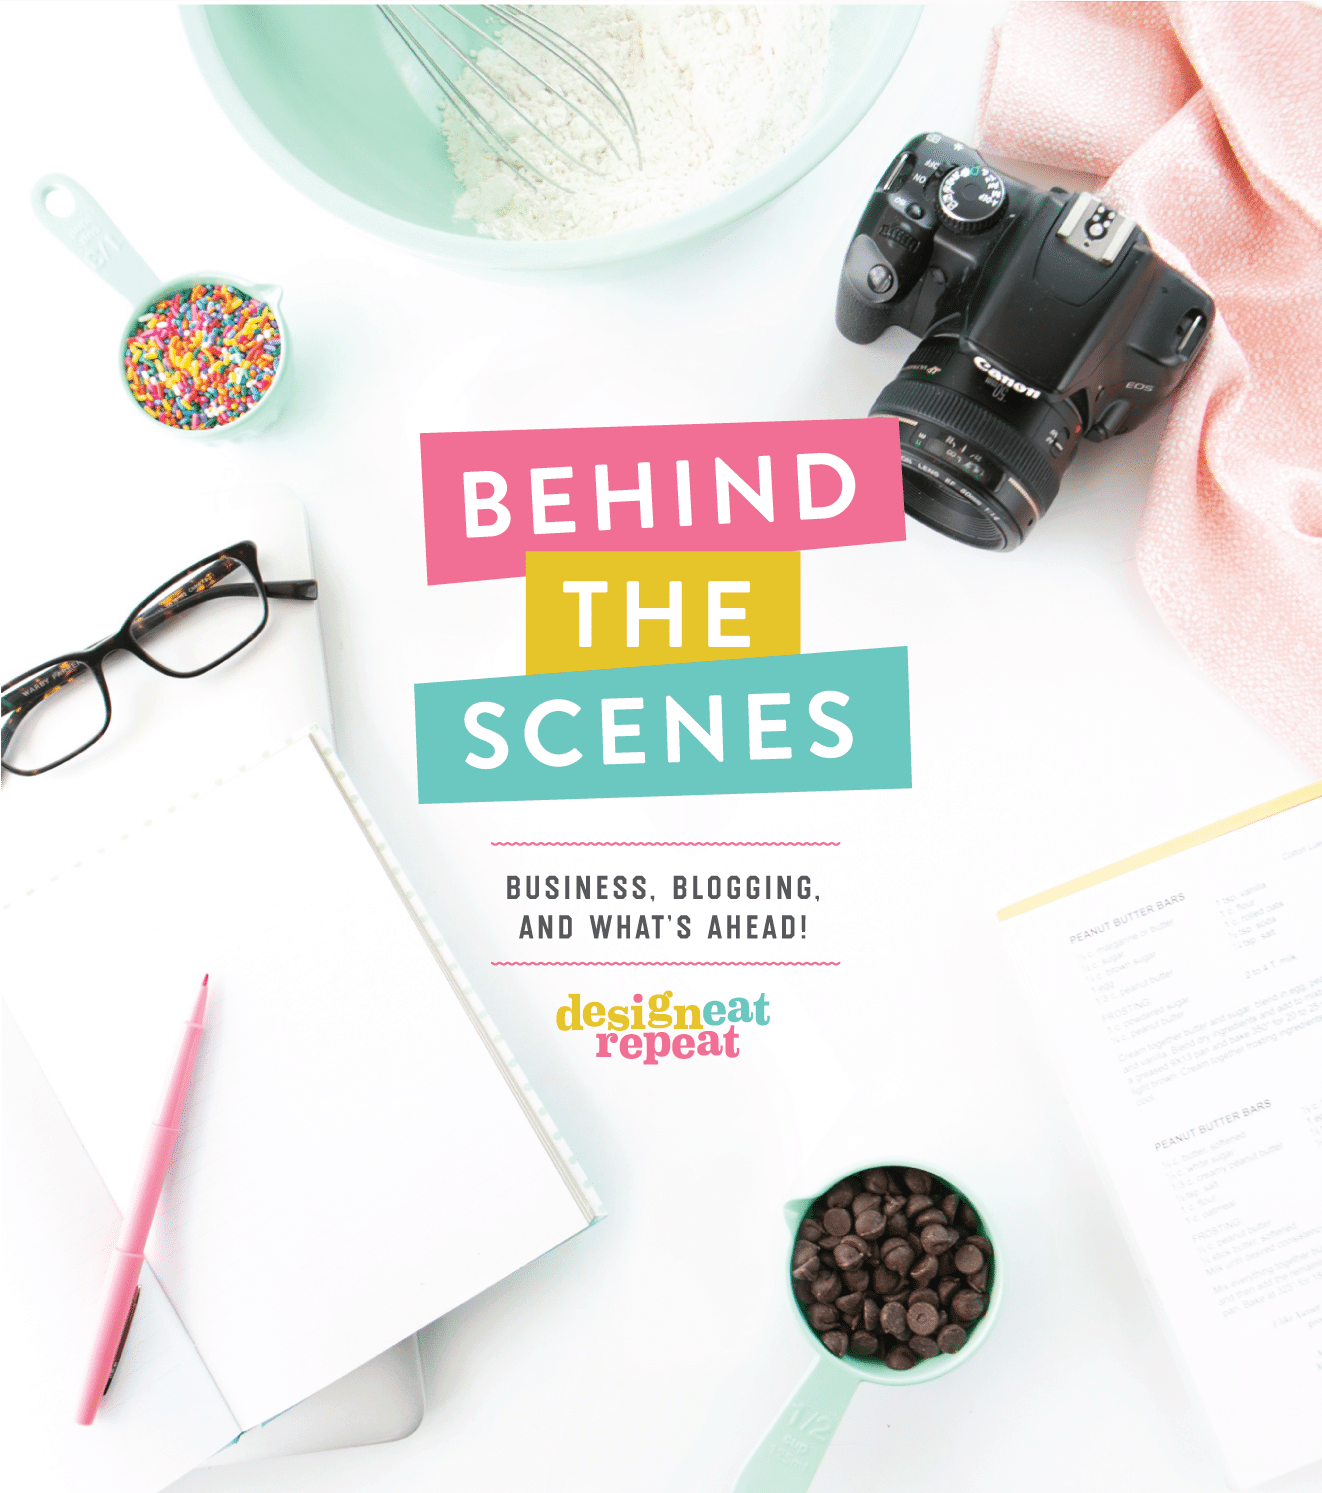 Behind The Scenes: Business, Blogging, and What's Ahead for Design Eat Repeat!